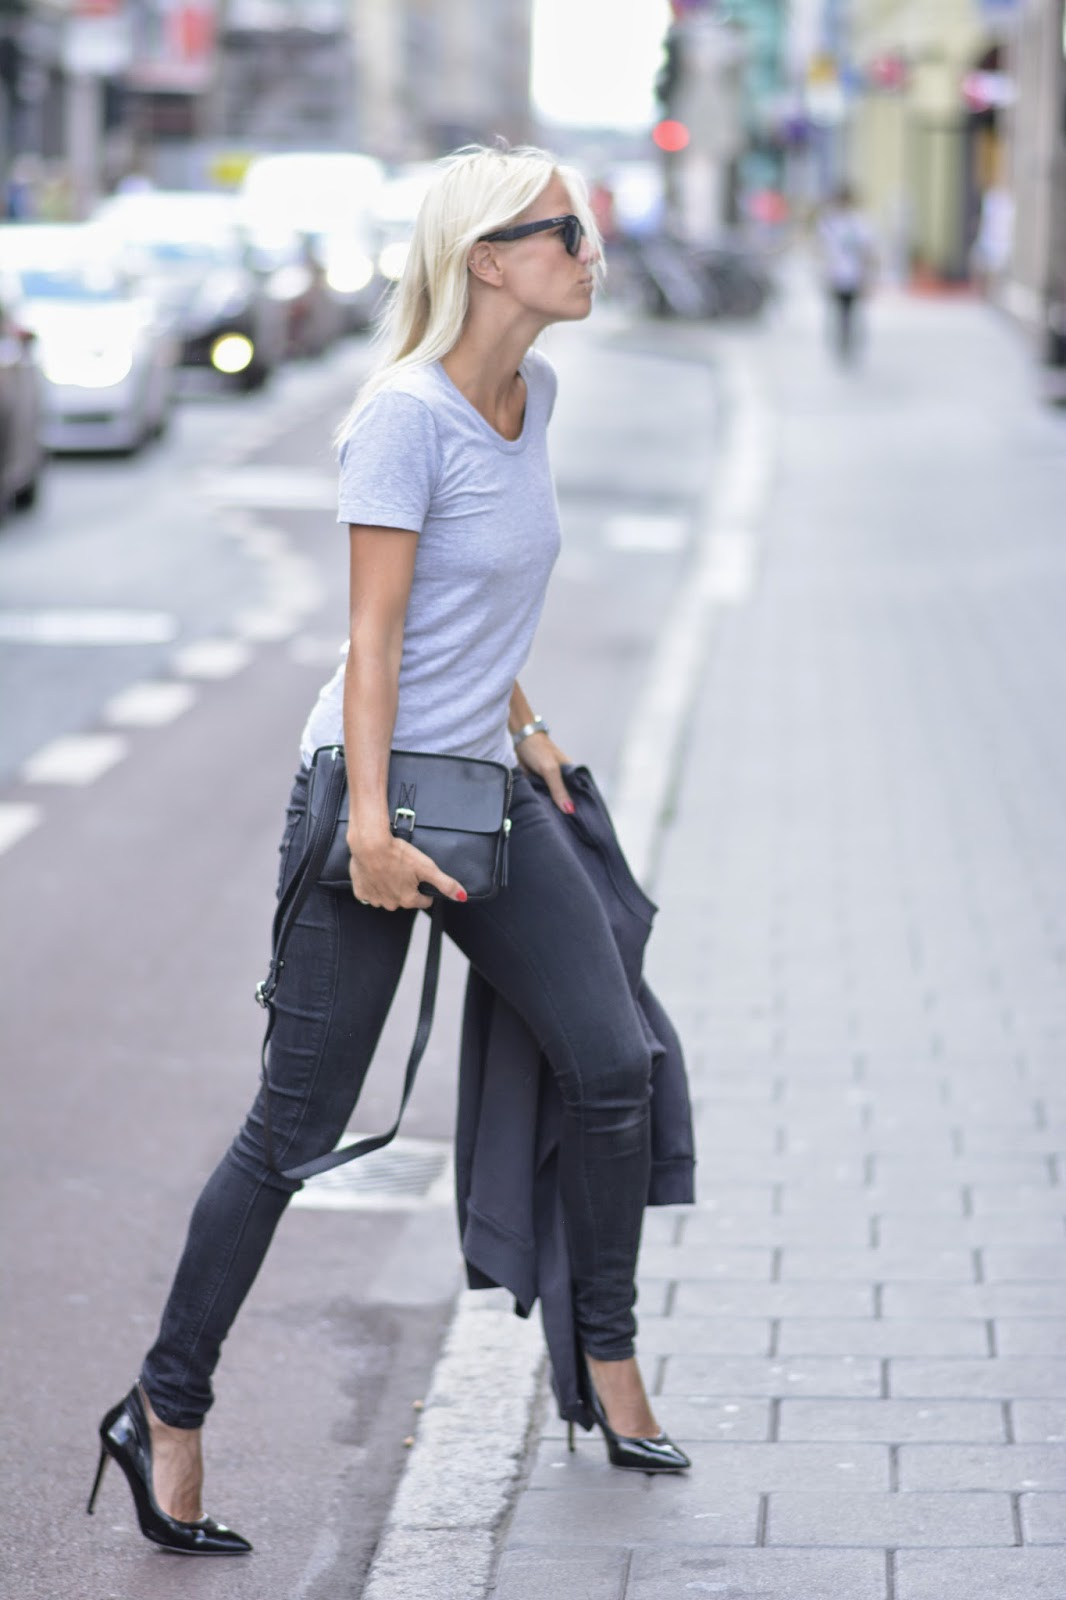 Celine Aagaard is wearing sunglasses from RayBan, tee from American Apparel, jeans from Genetic Denim and shoes form Aldo